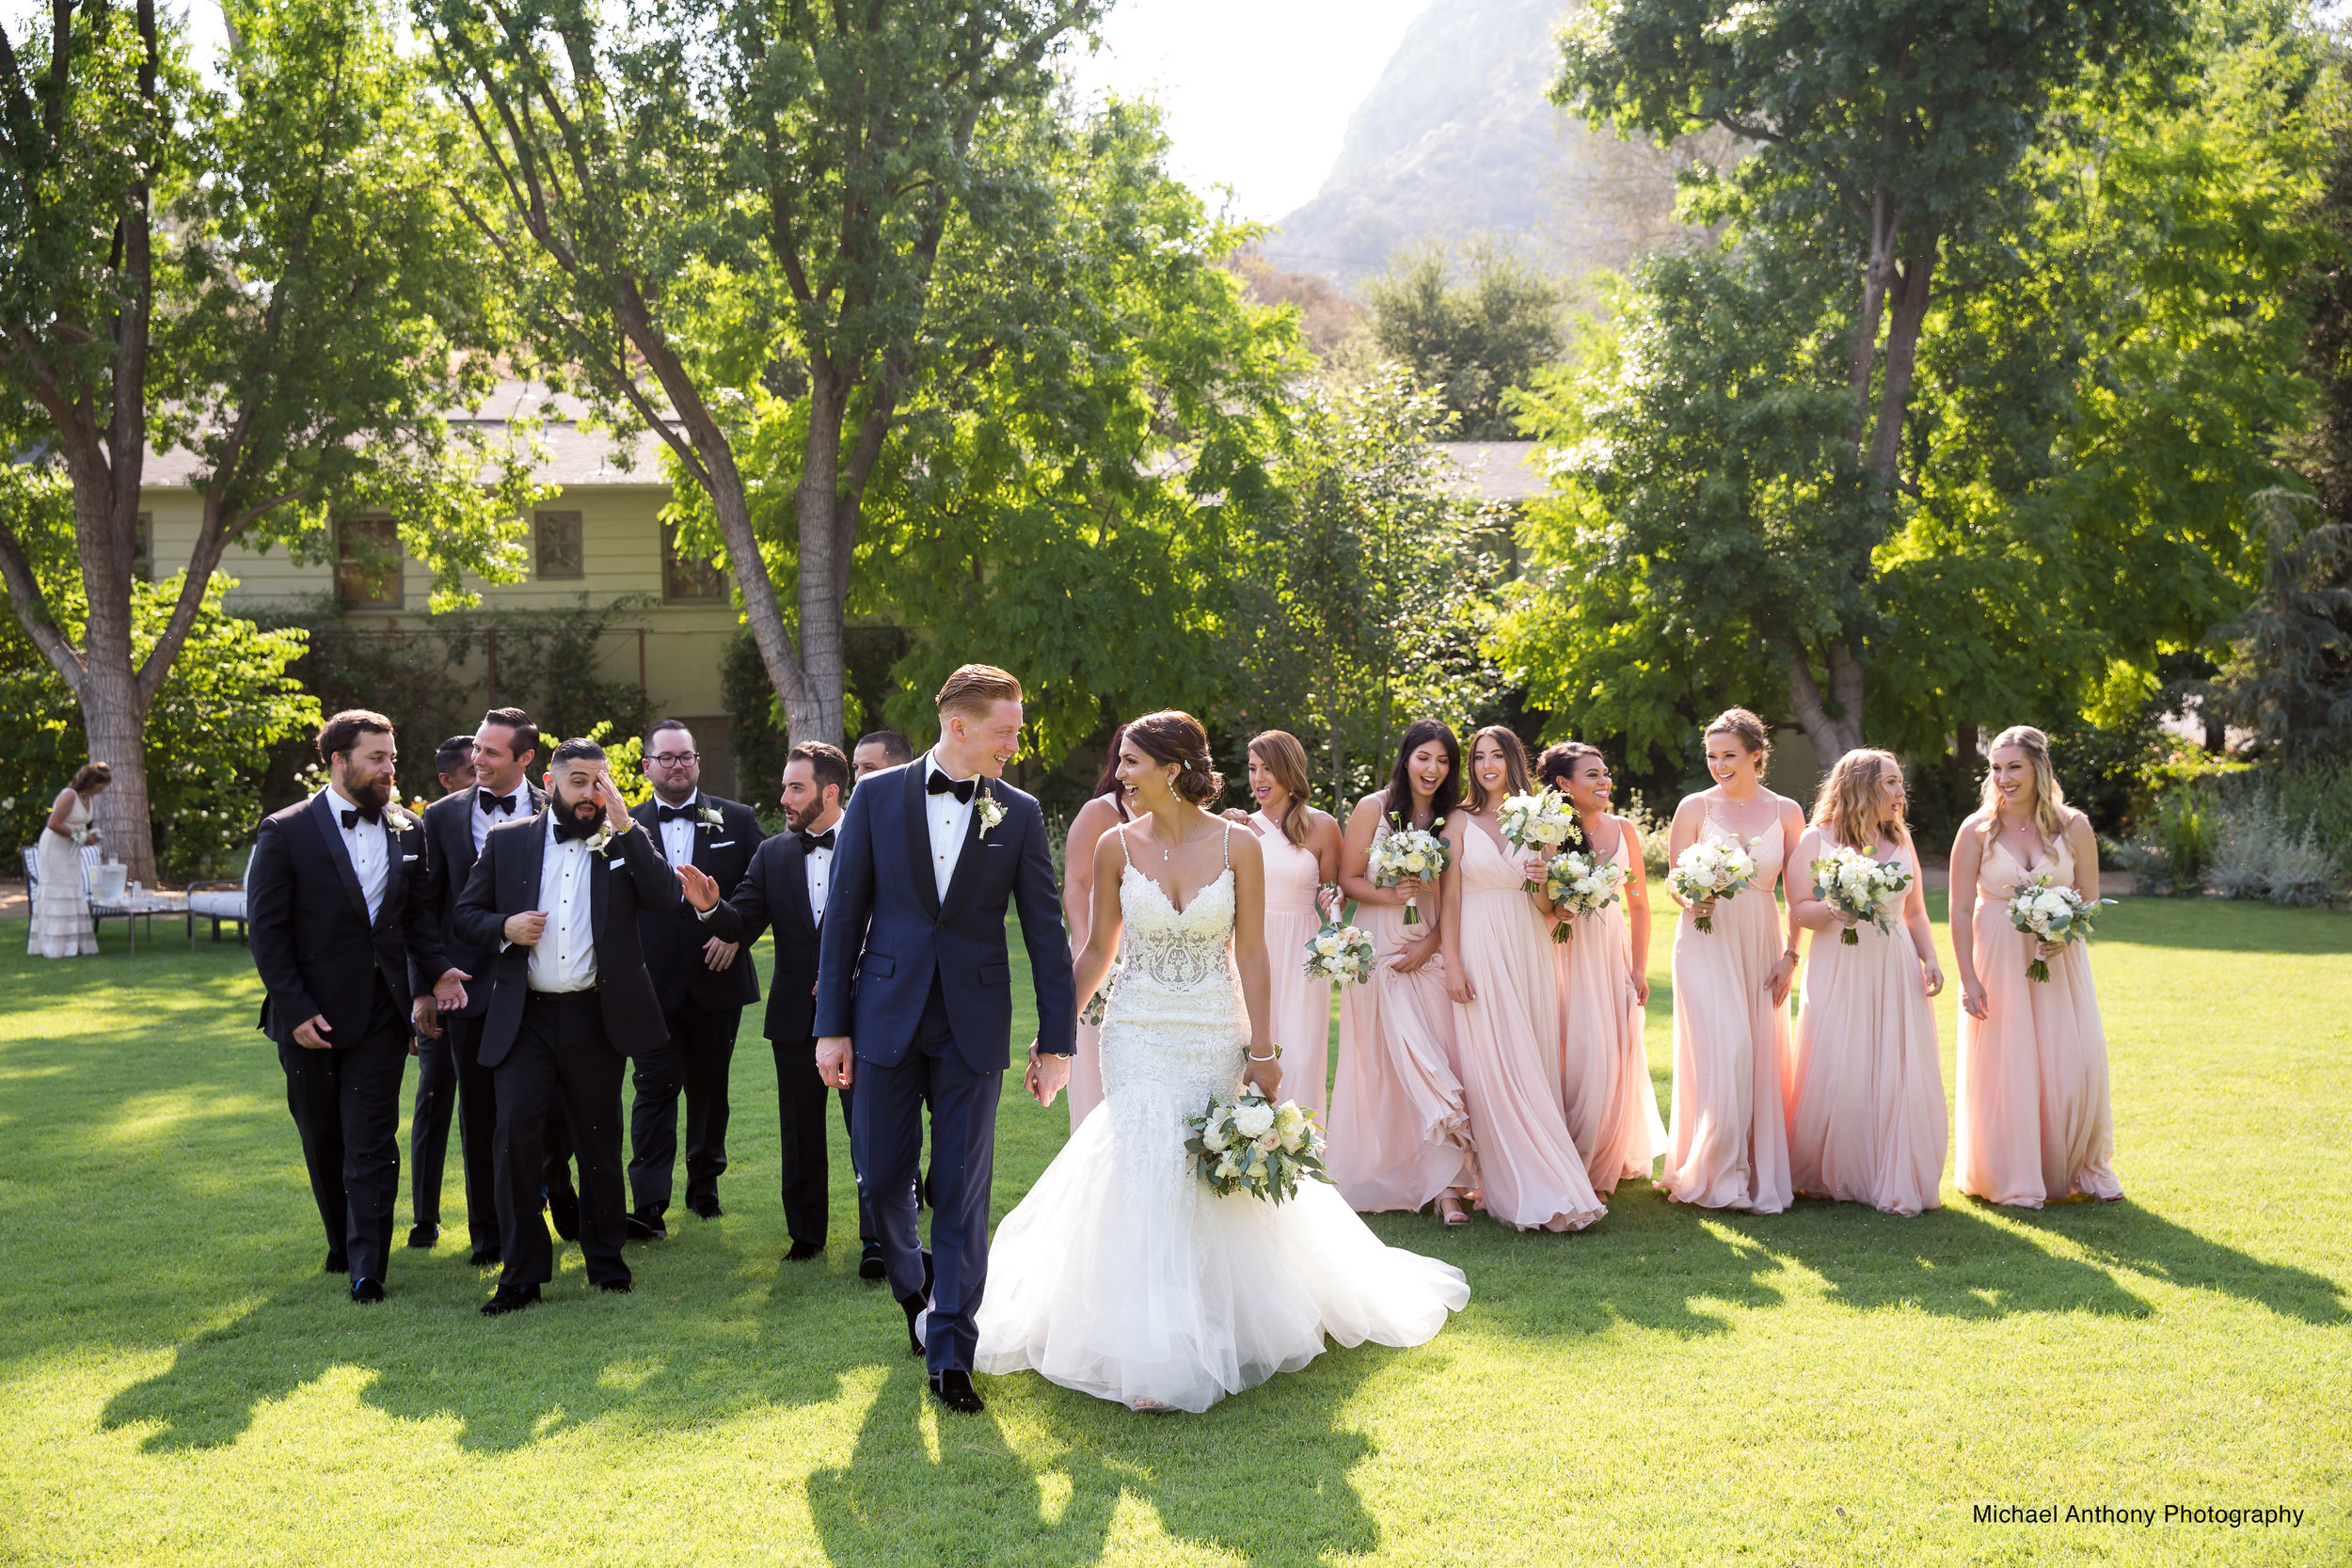 Banta wedding party on lawn Michael Anthony Photography.jpg